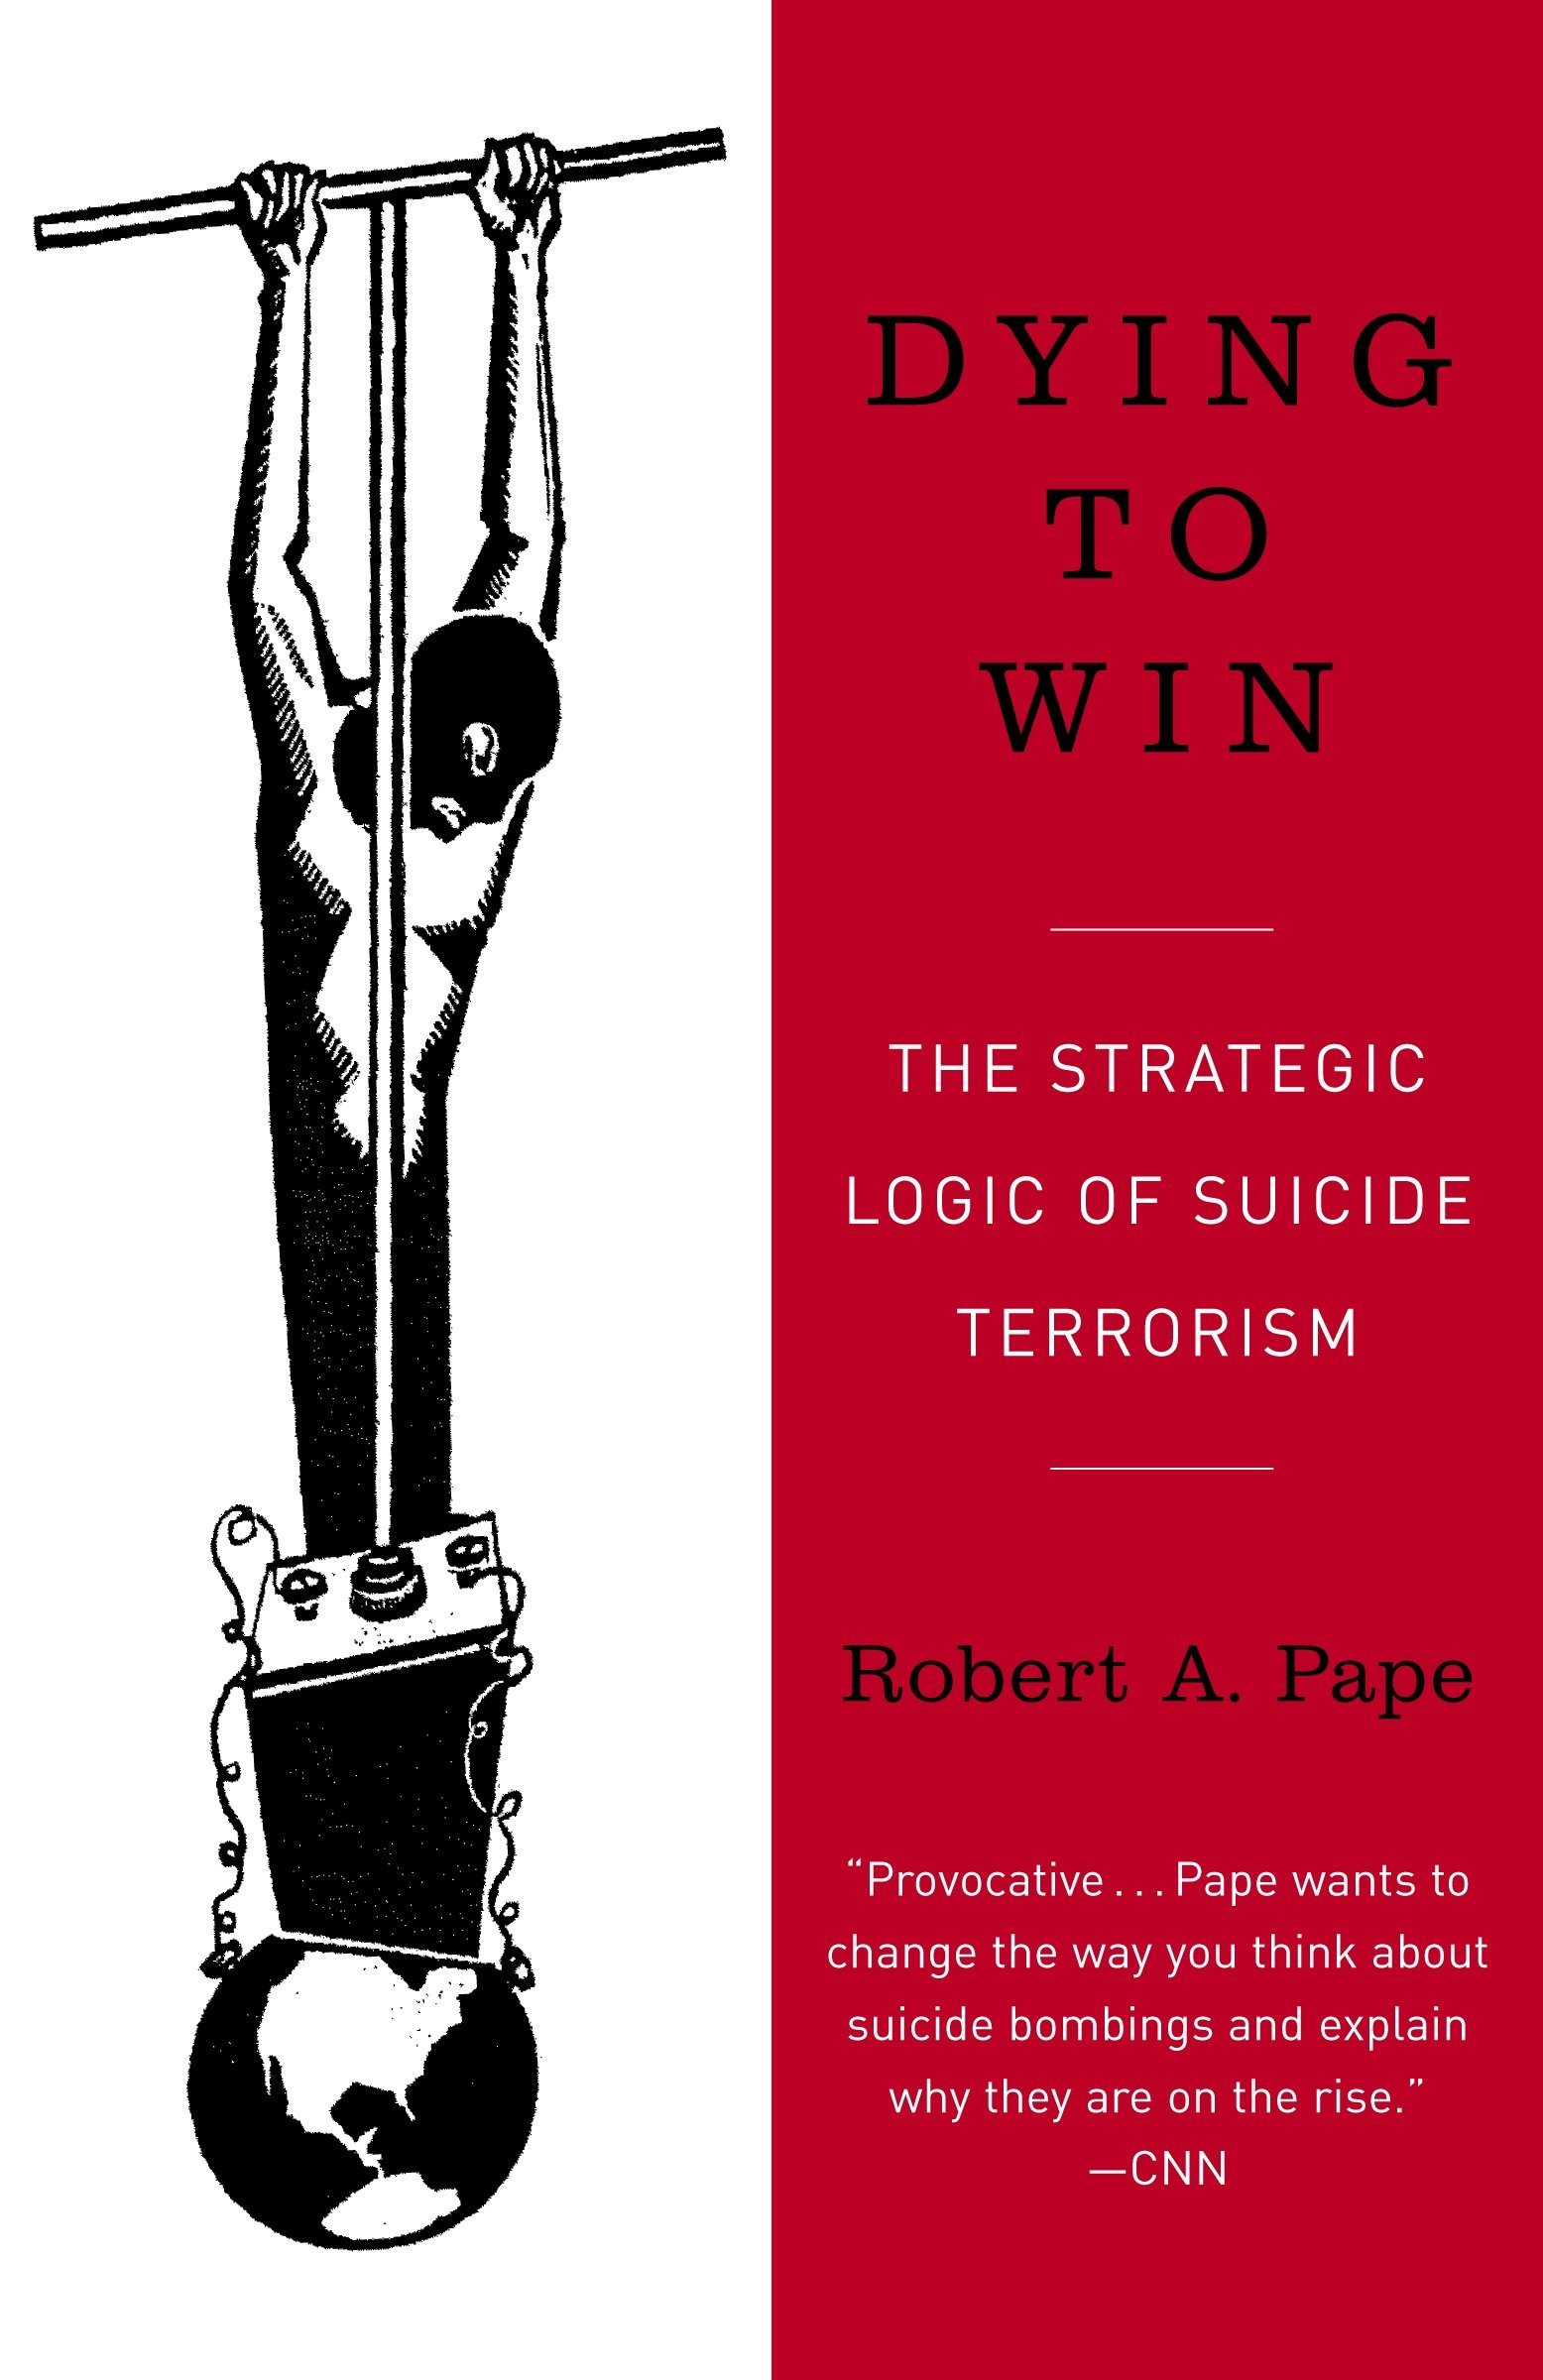 the strategic logic of suicide terrorism summary